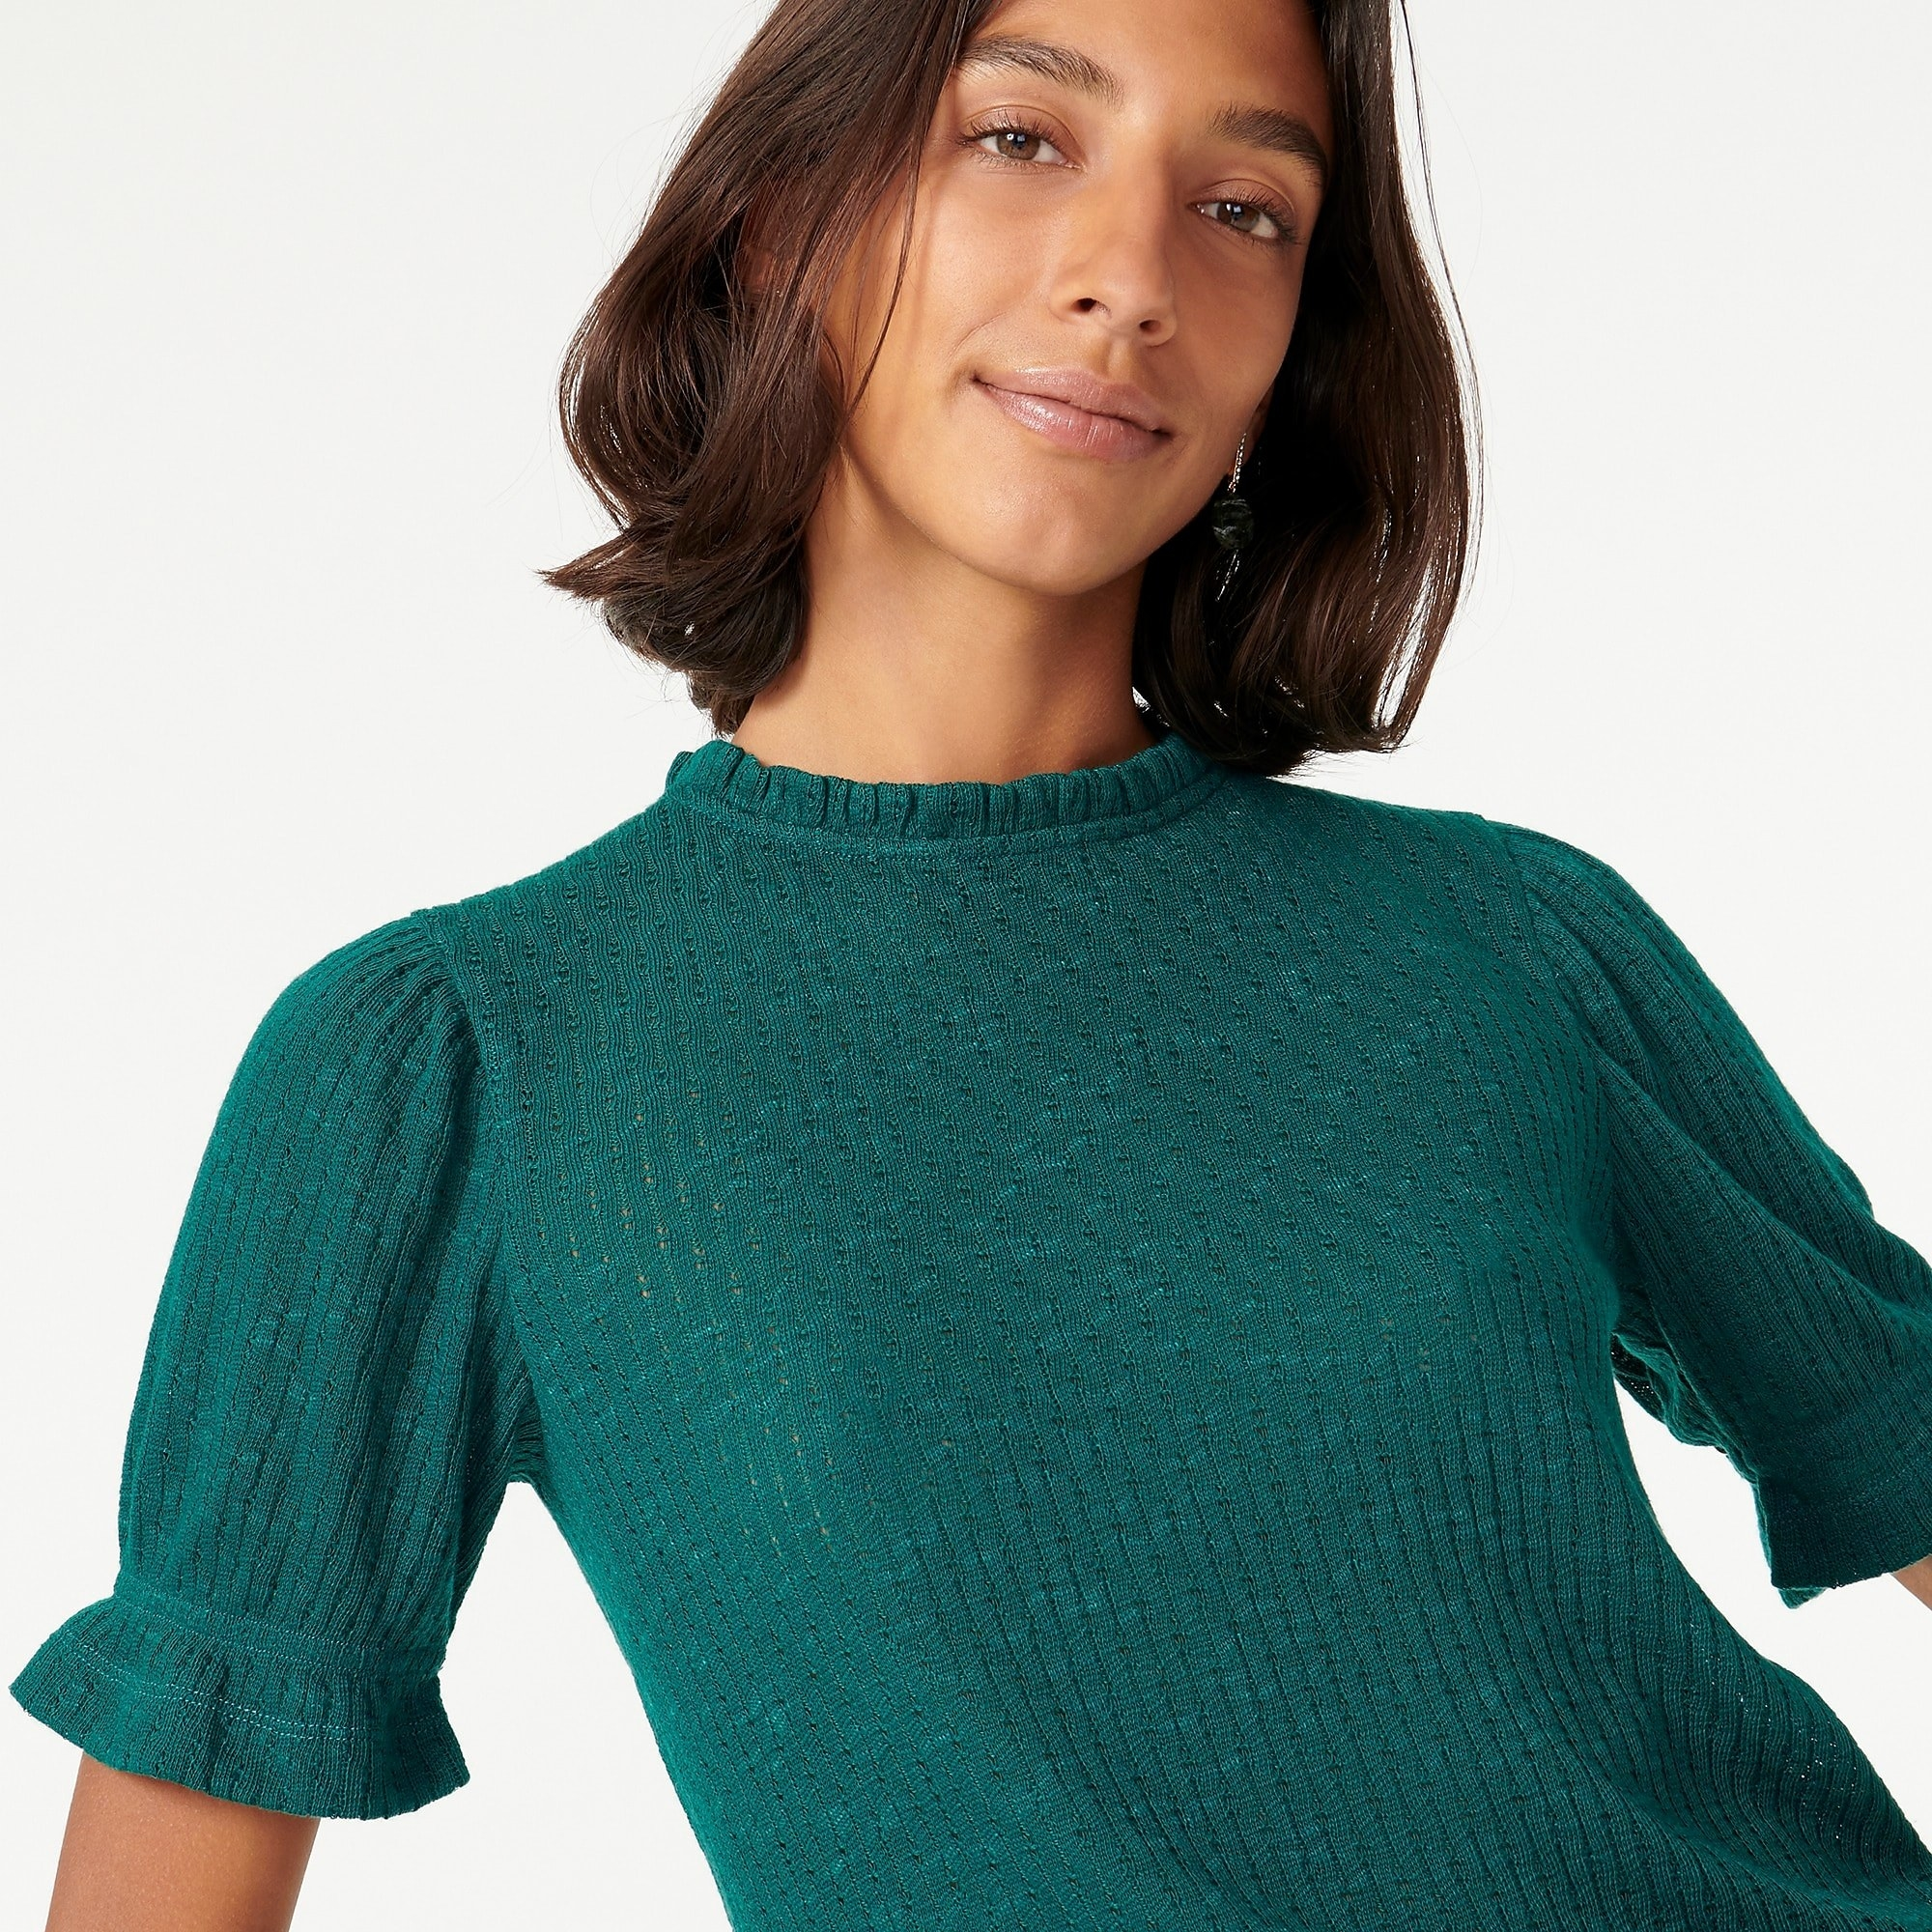 model wearing teal green sweater pointelle top with ruffle at neckline and puff sleeve